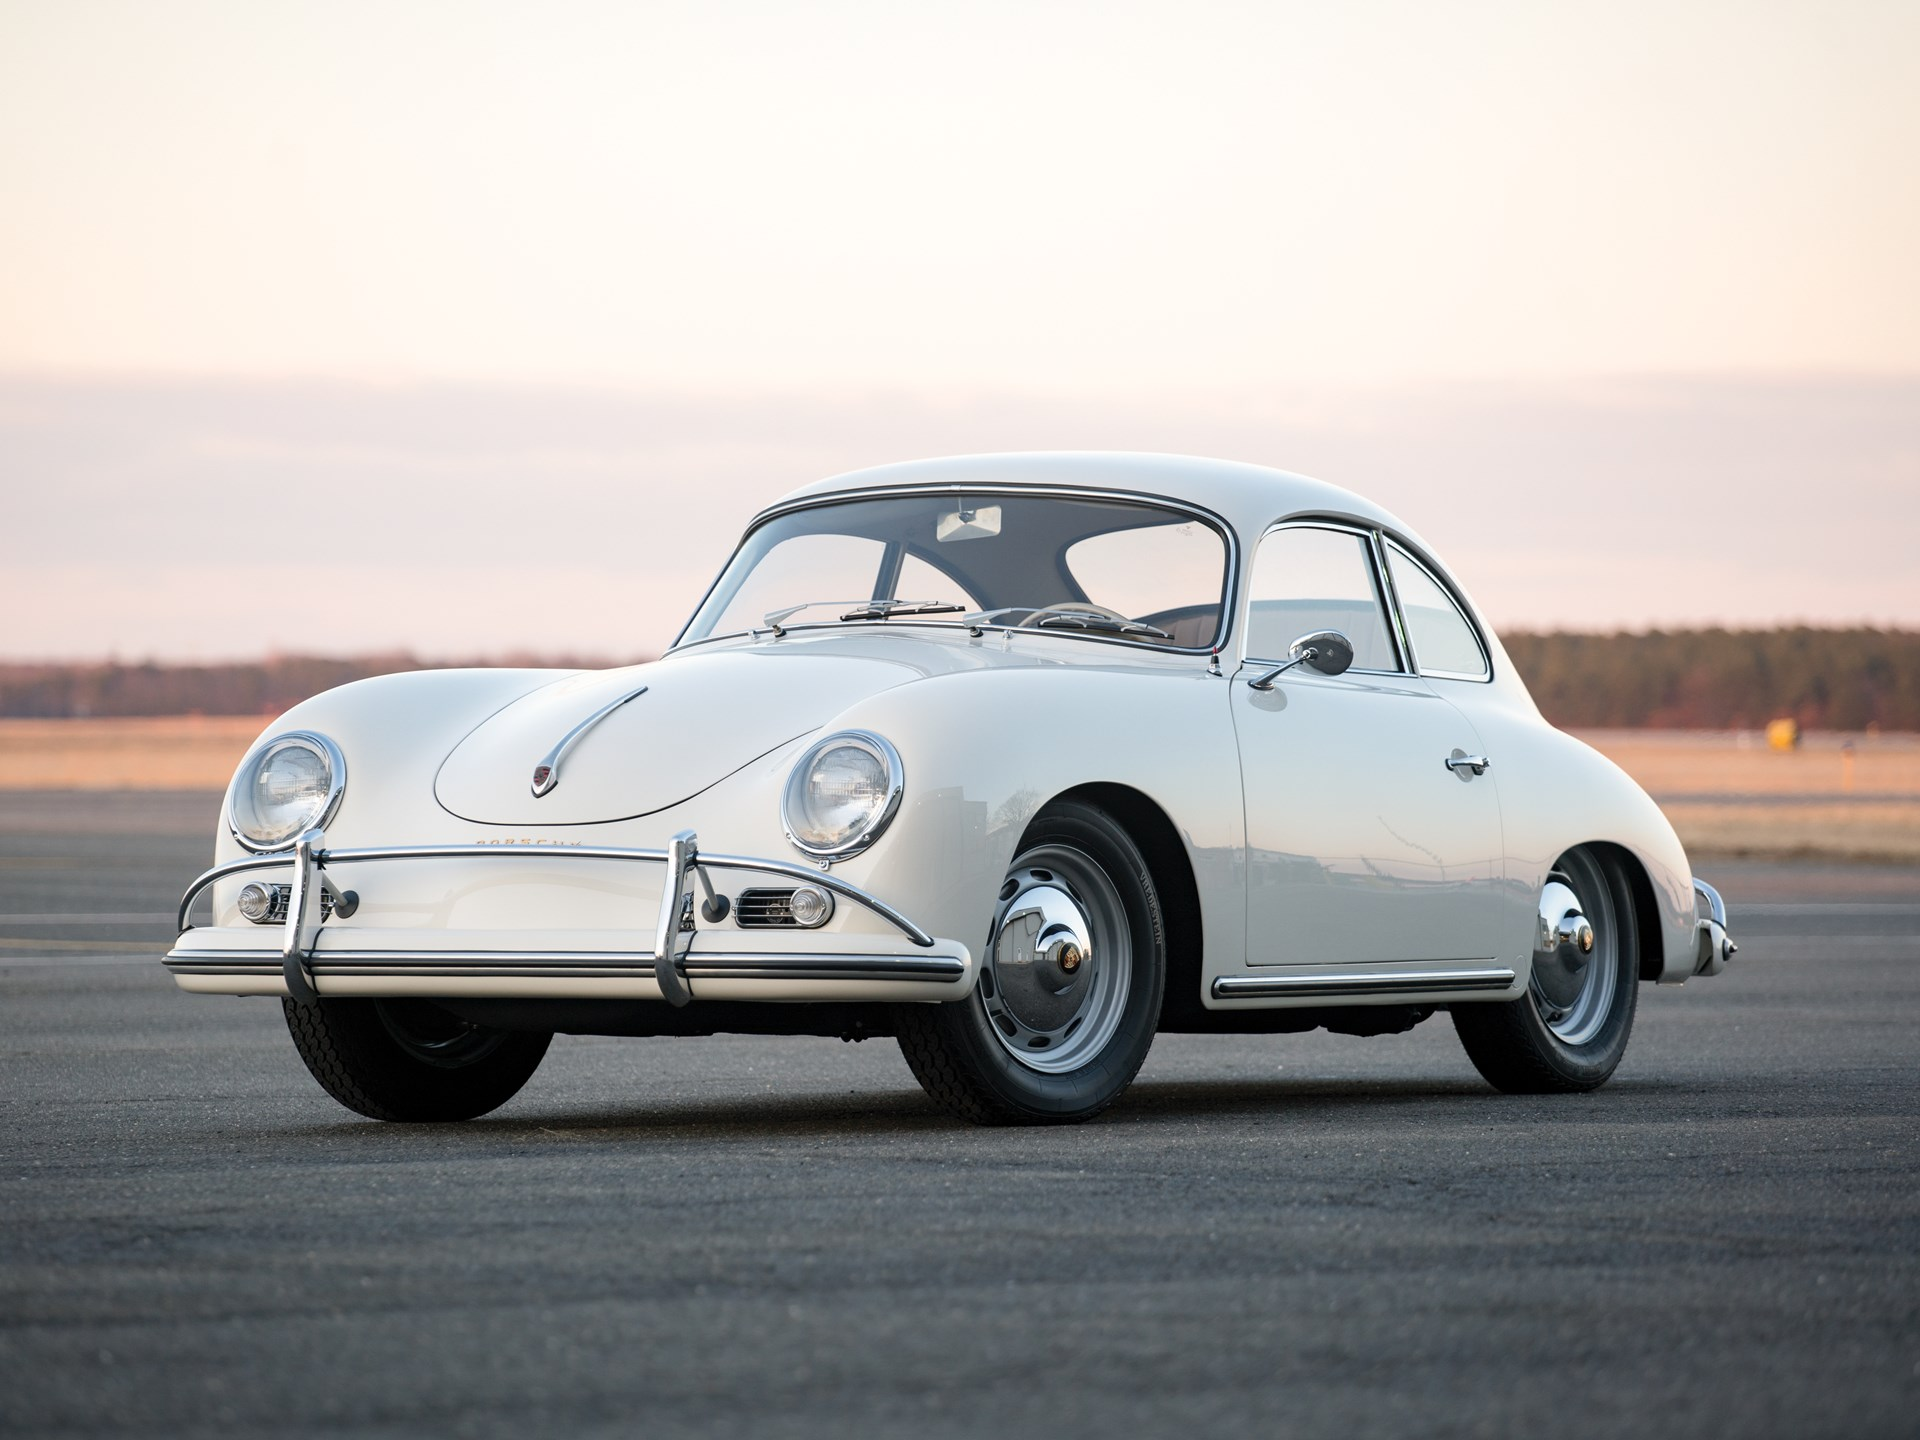 rm sotheby 39 s 1959 porsche 356 a coupe by reutter. Black Bedroom Furniture Sets. Home Design Ideas